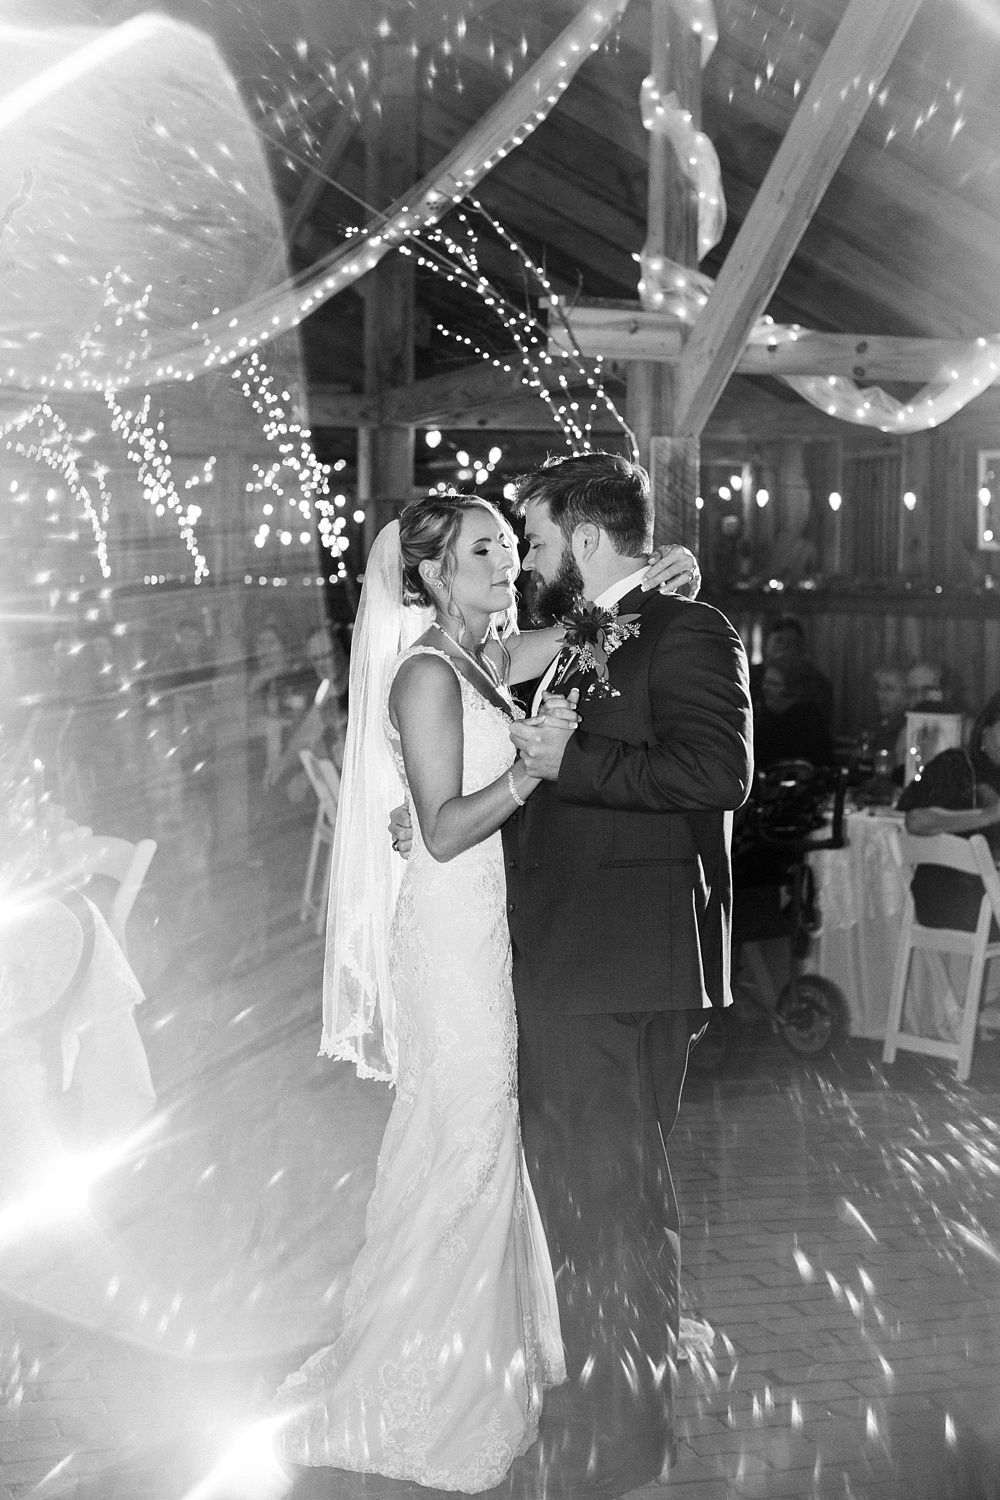 bride and groom's first dance by rachael bowman photography